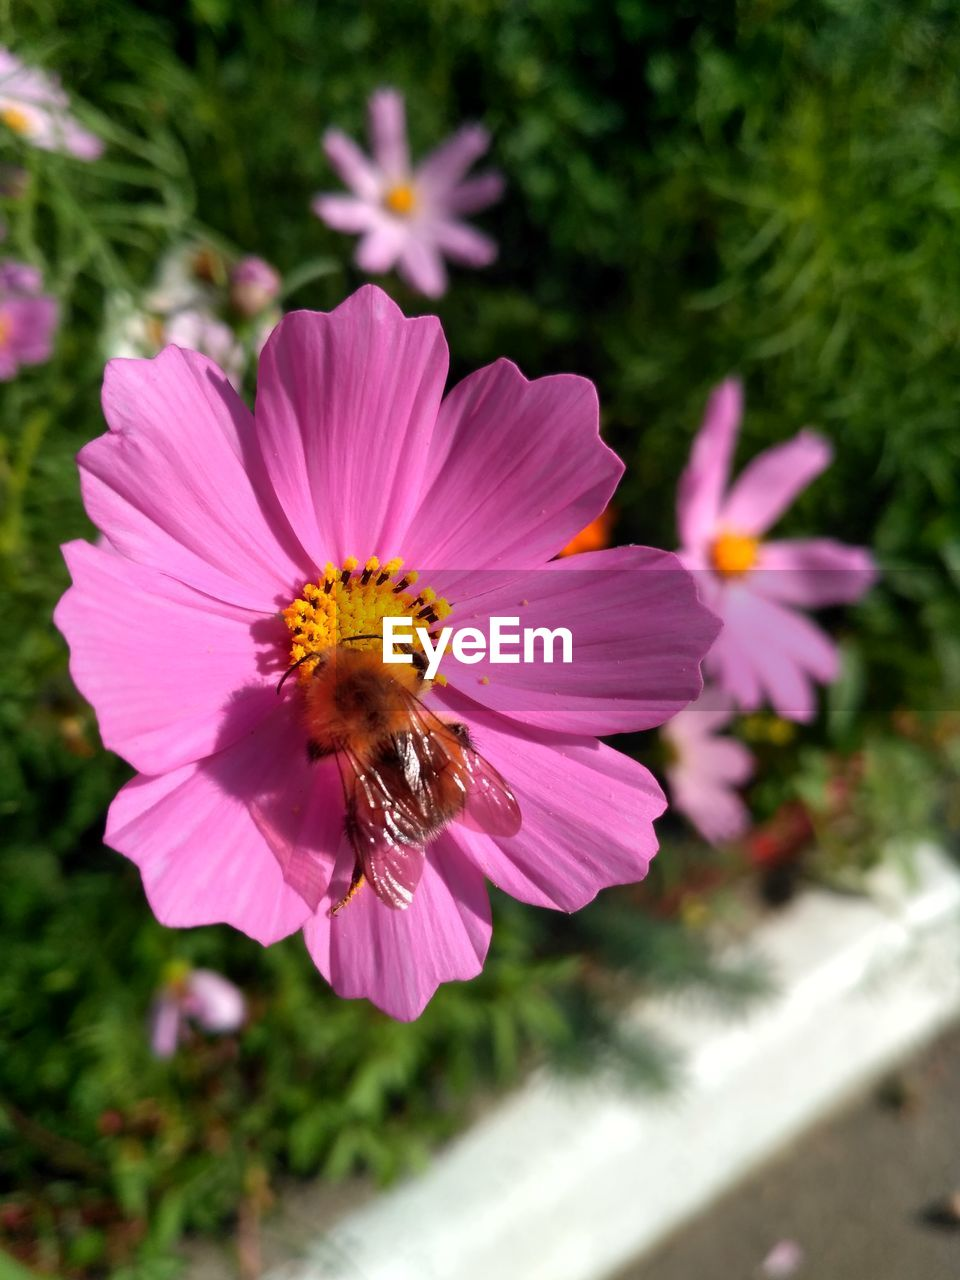 flowering plant, flower, insect, beauty in nature, petal, fragility, invertebrate, vulnerability, freshness, animal wildlife, plant, growth, bee, flower head, animals in the wild, animal, animal themes, close-up, inflorescence, one animal, pollination, pollen, pink color, no people, bumblebee, purple